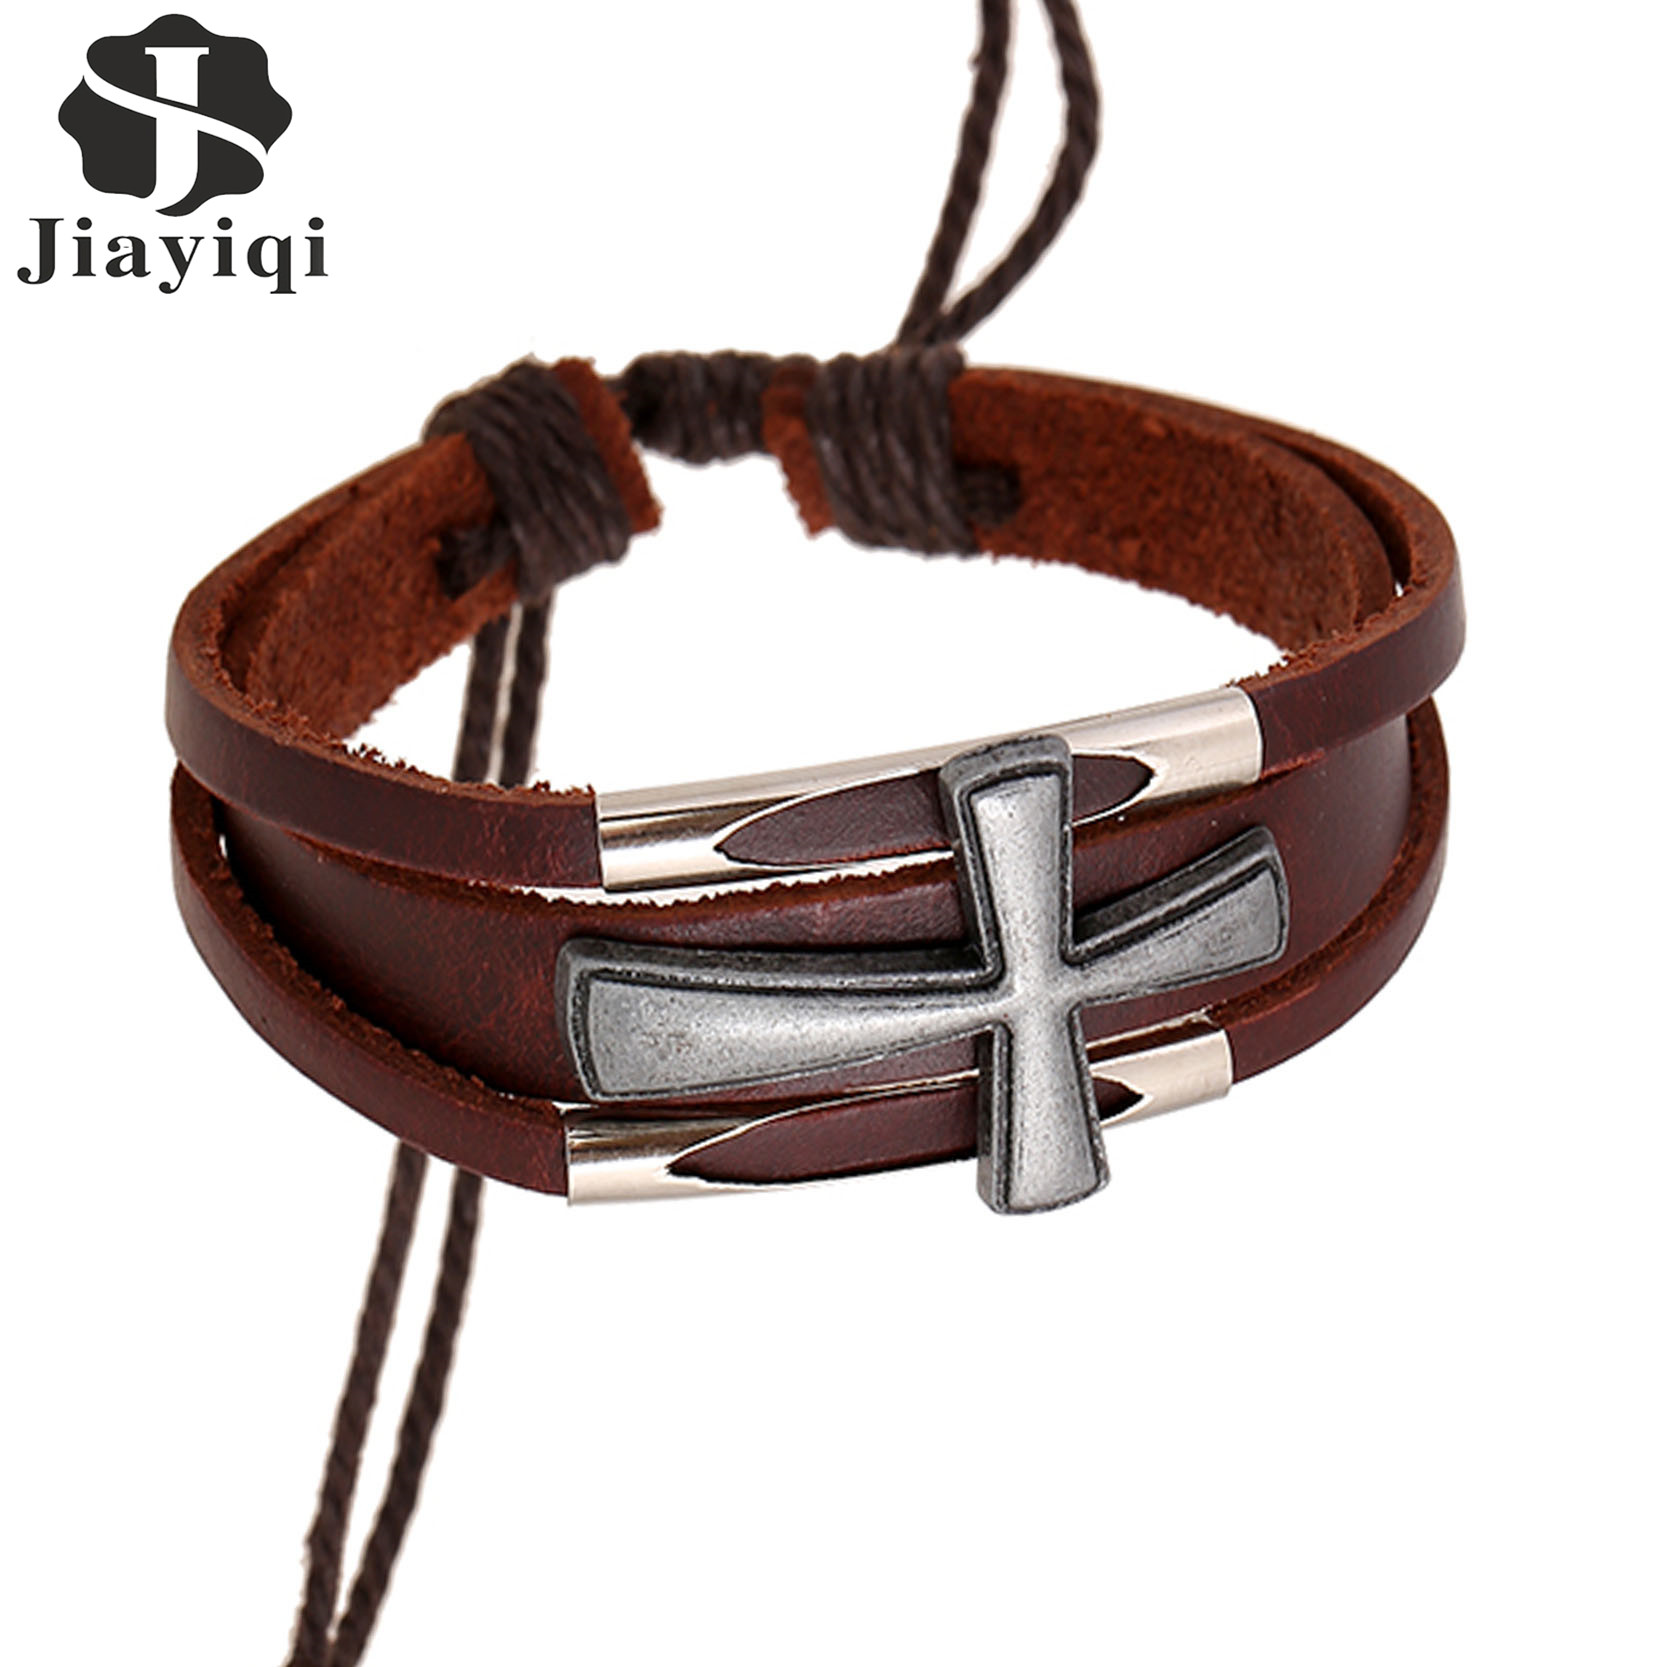 Leather Wrap Charm Bracelet: Designer Jewelry Vintage Crosses Wrap Leather Bracelet Men